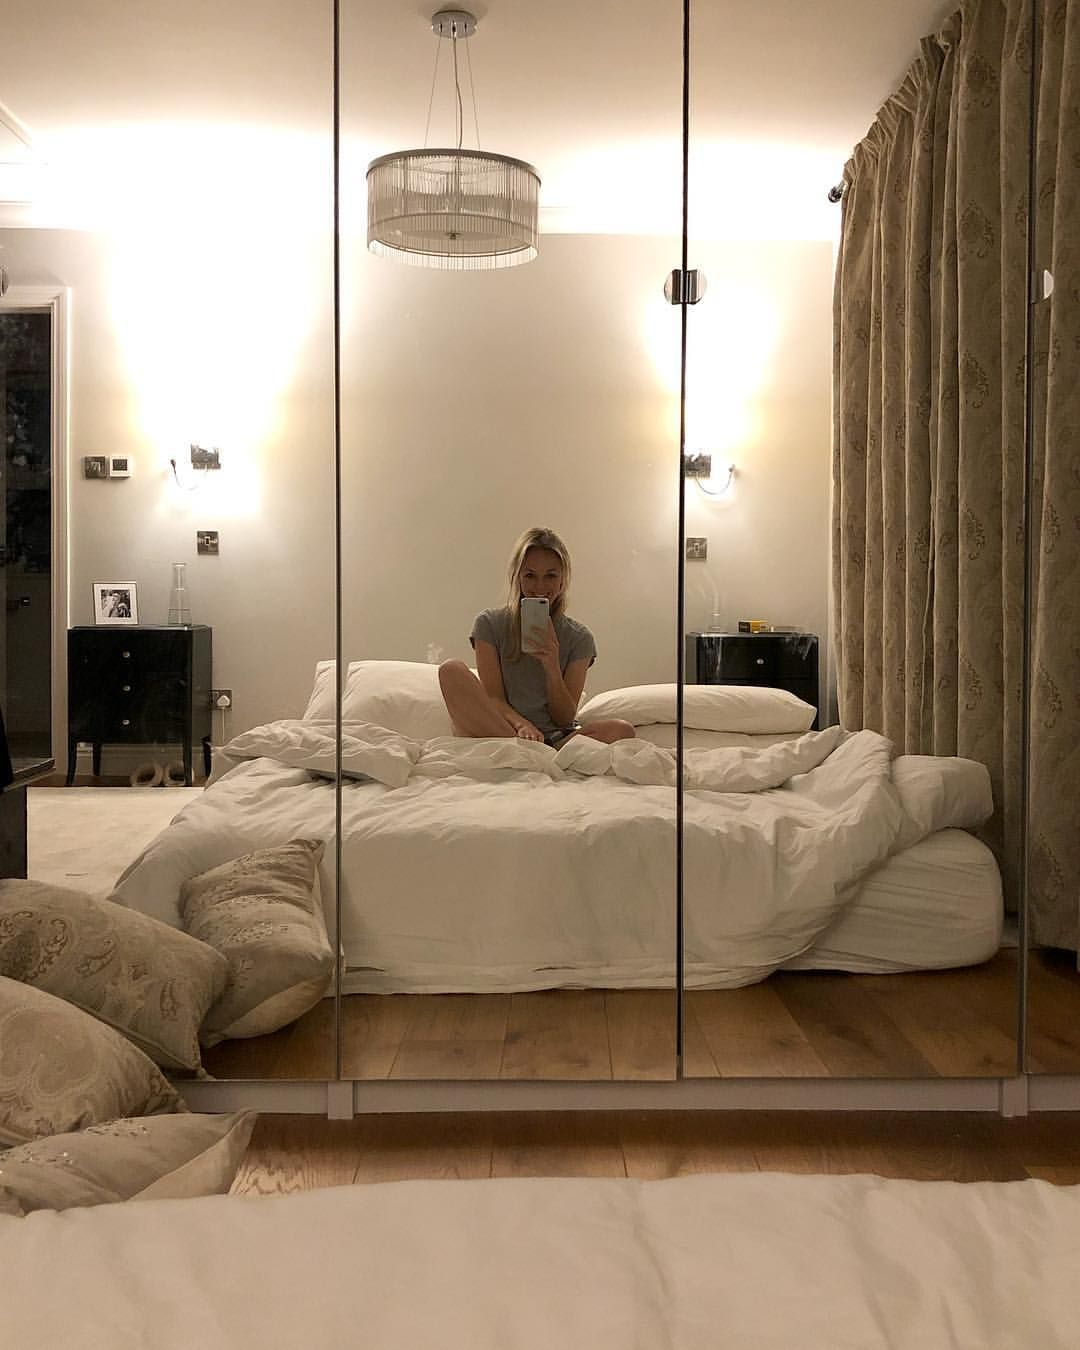 Just waiting for my new bed to arrive! 🙋🏼♀️ I dare not